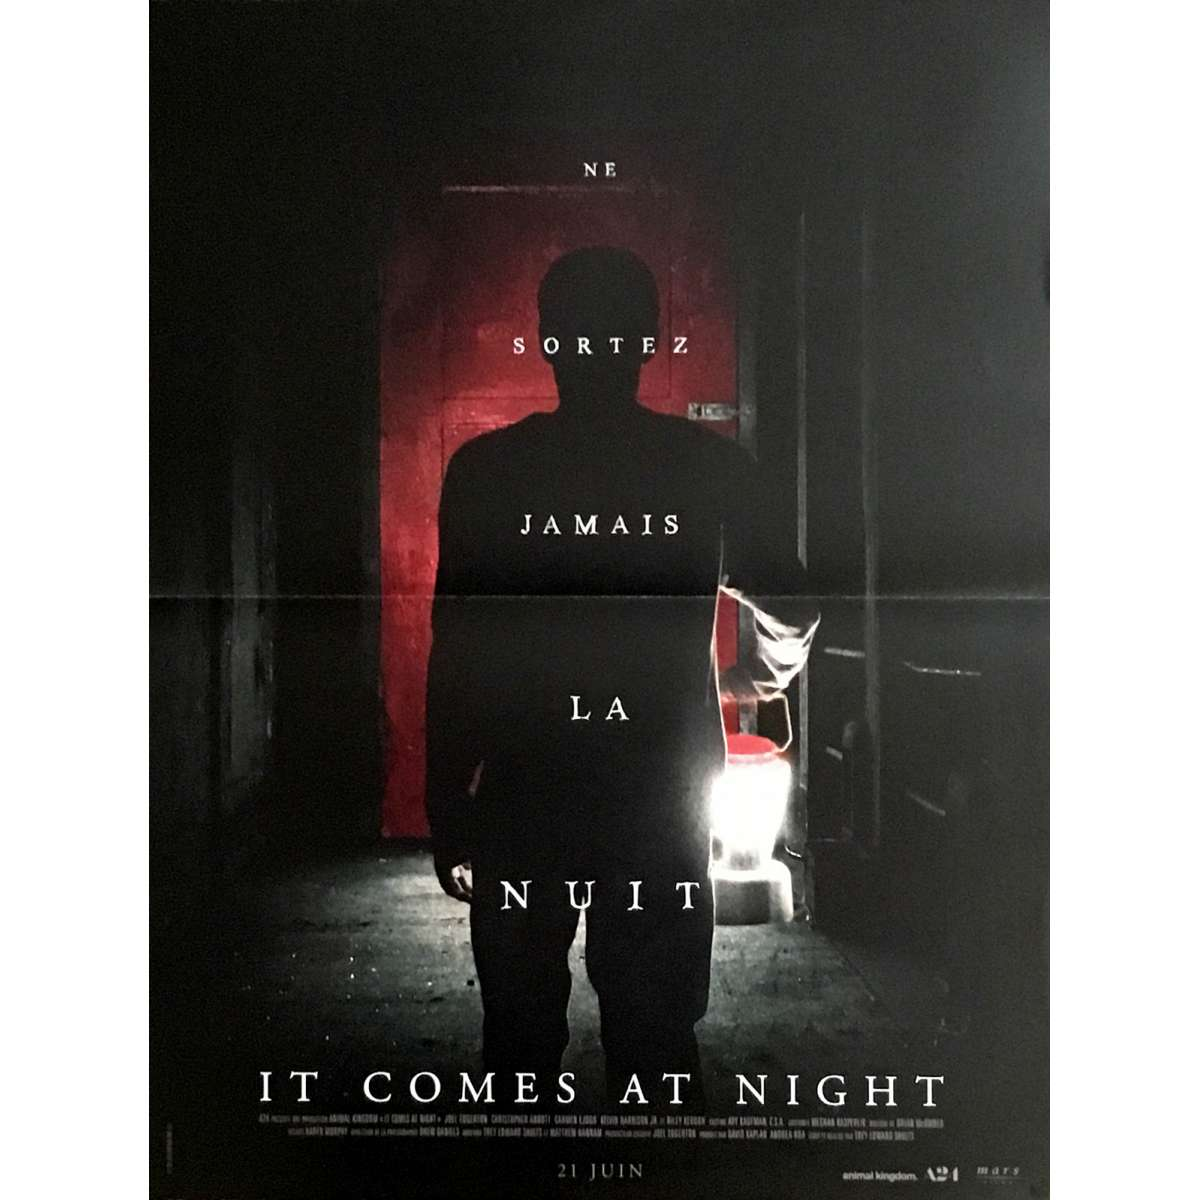 Ver Pelicula It Comes At Night 2017 Online Gratis